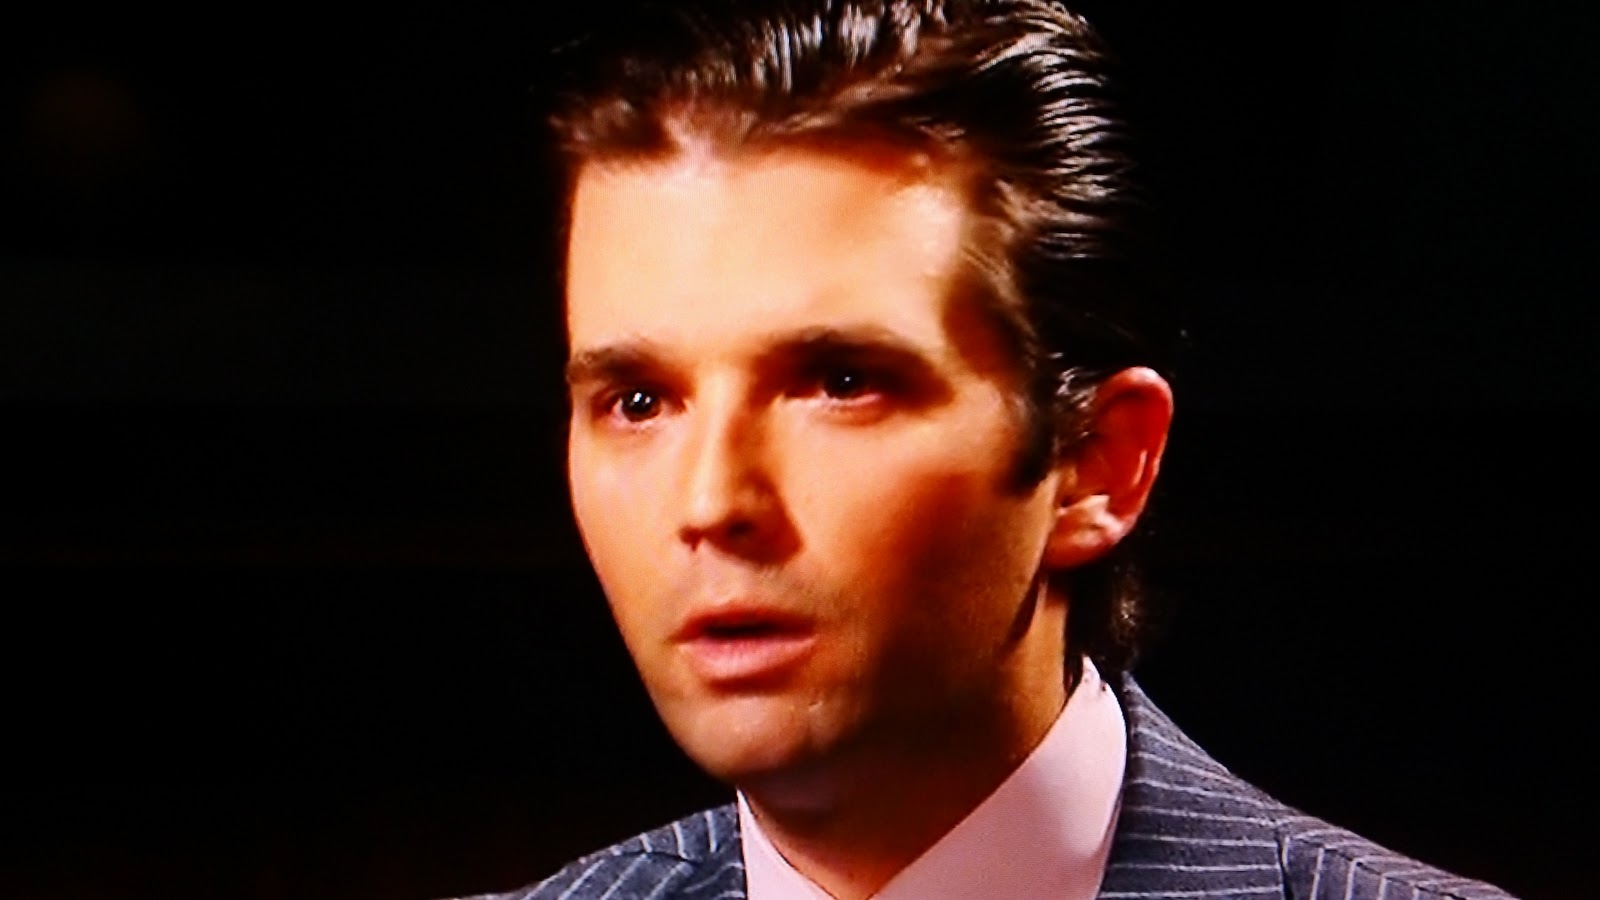 Donald Trump Jr Did He Have Plastic Surgery Hollywood0nlinetv